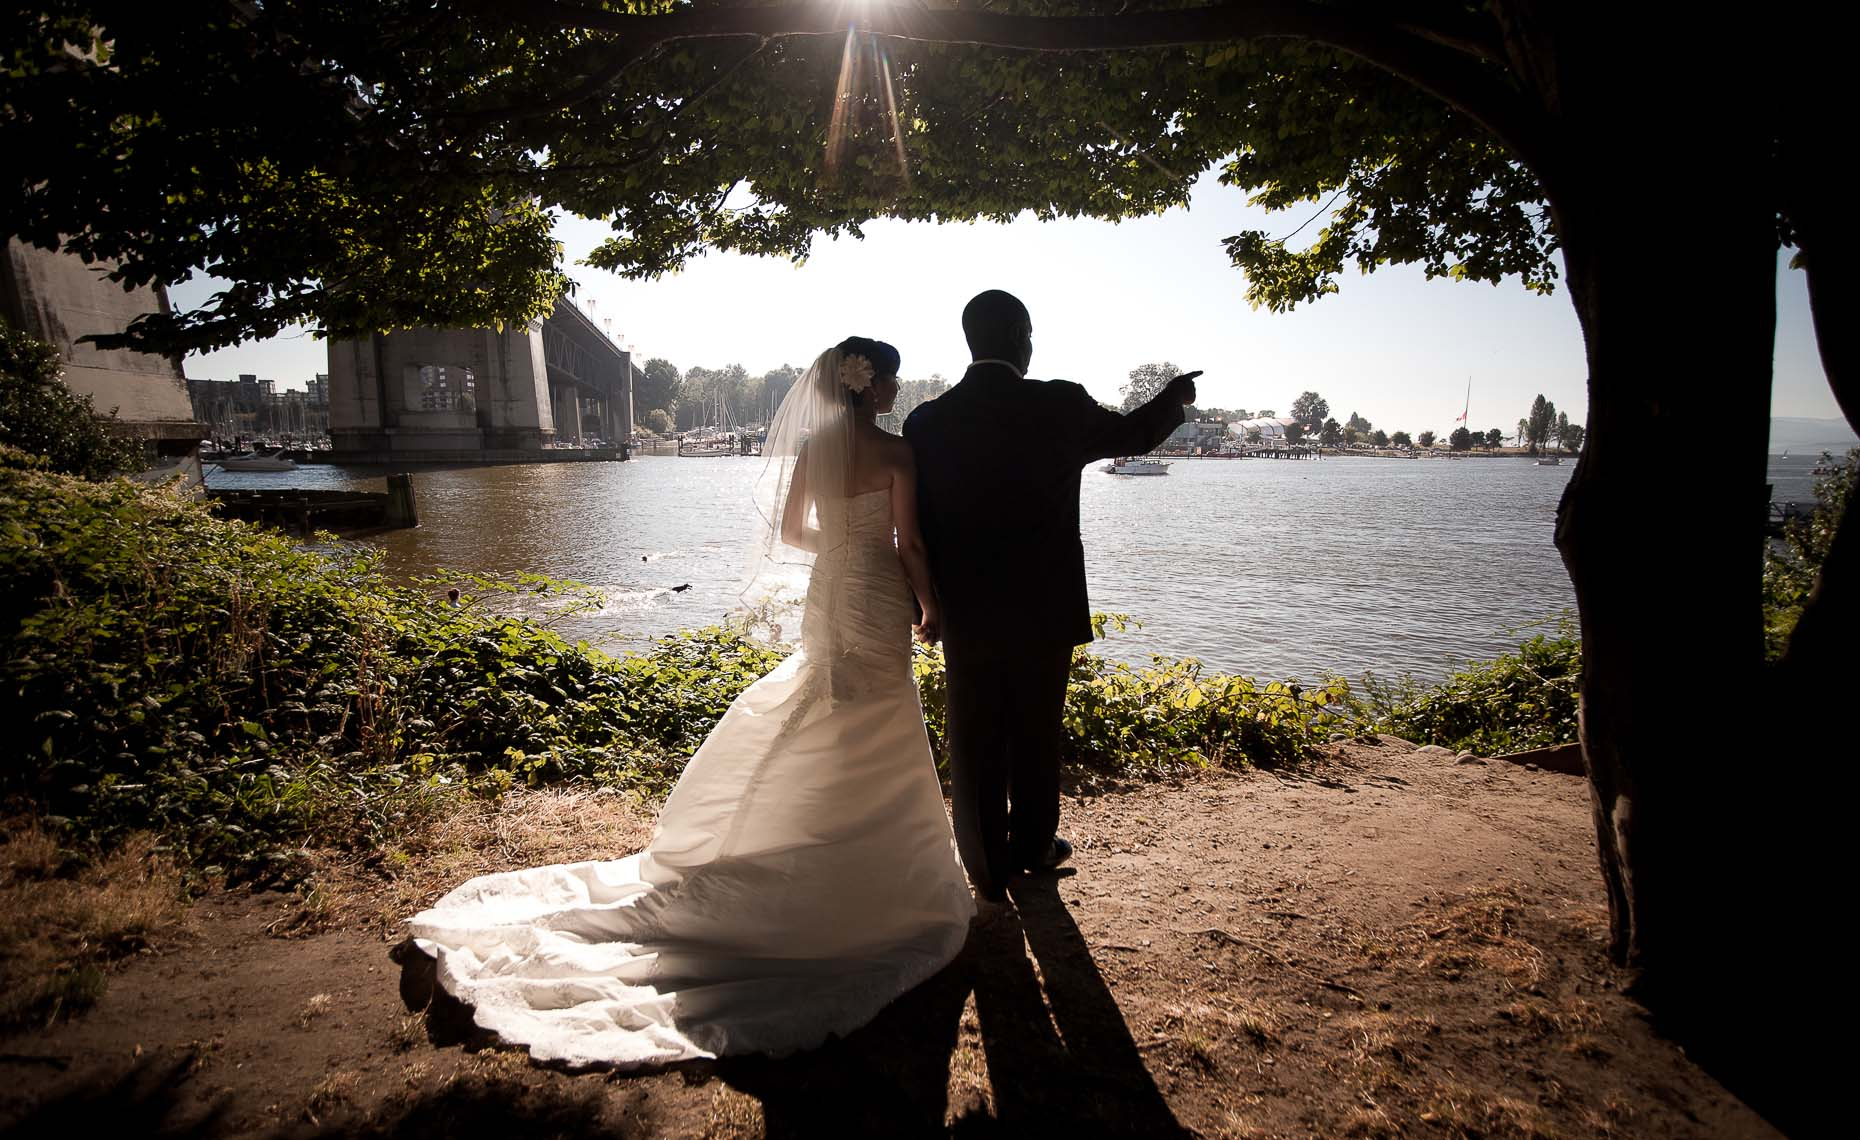 silhouette of vancouver wedding couple by burrard inlet